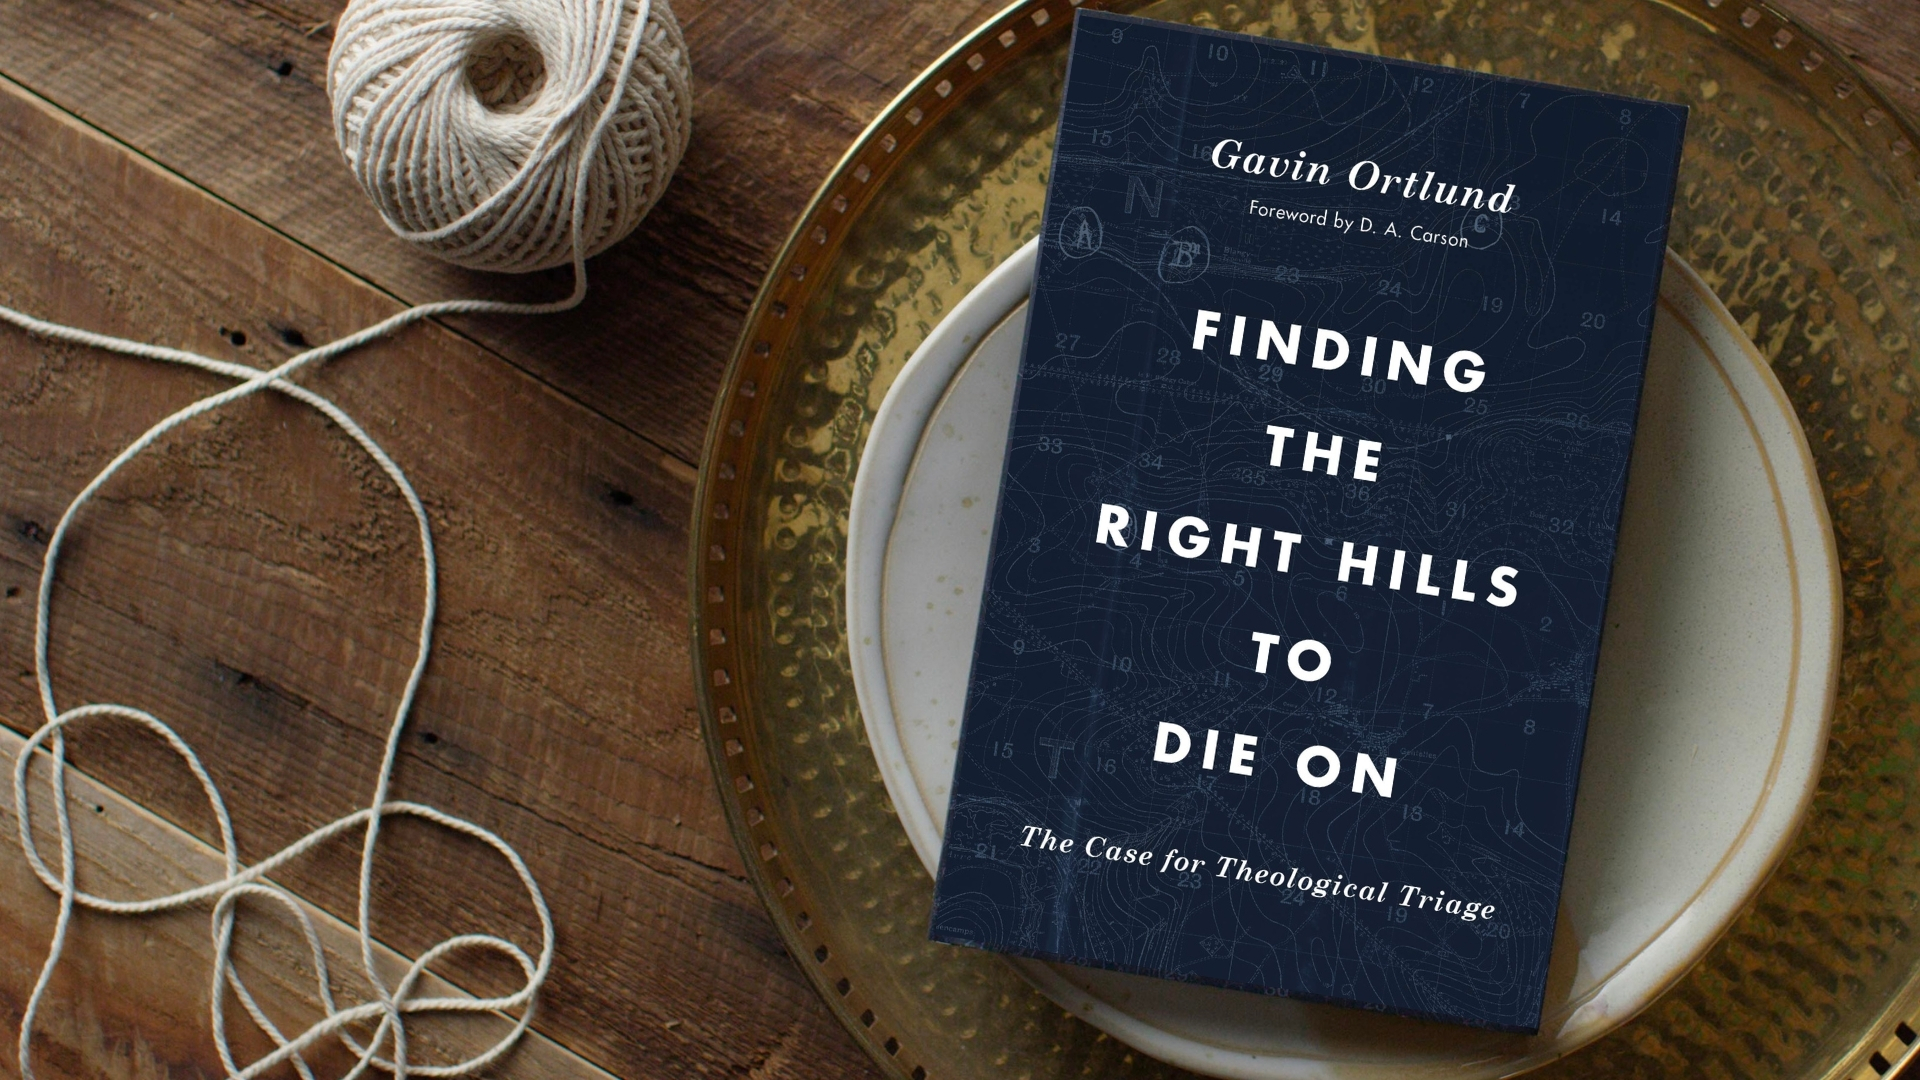 How to pick the right theological fights - Finding the right hills to die on - book on table top